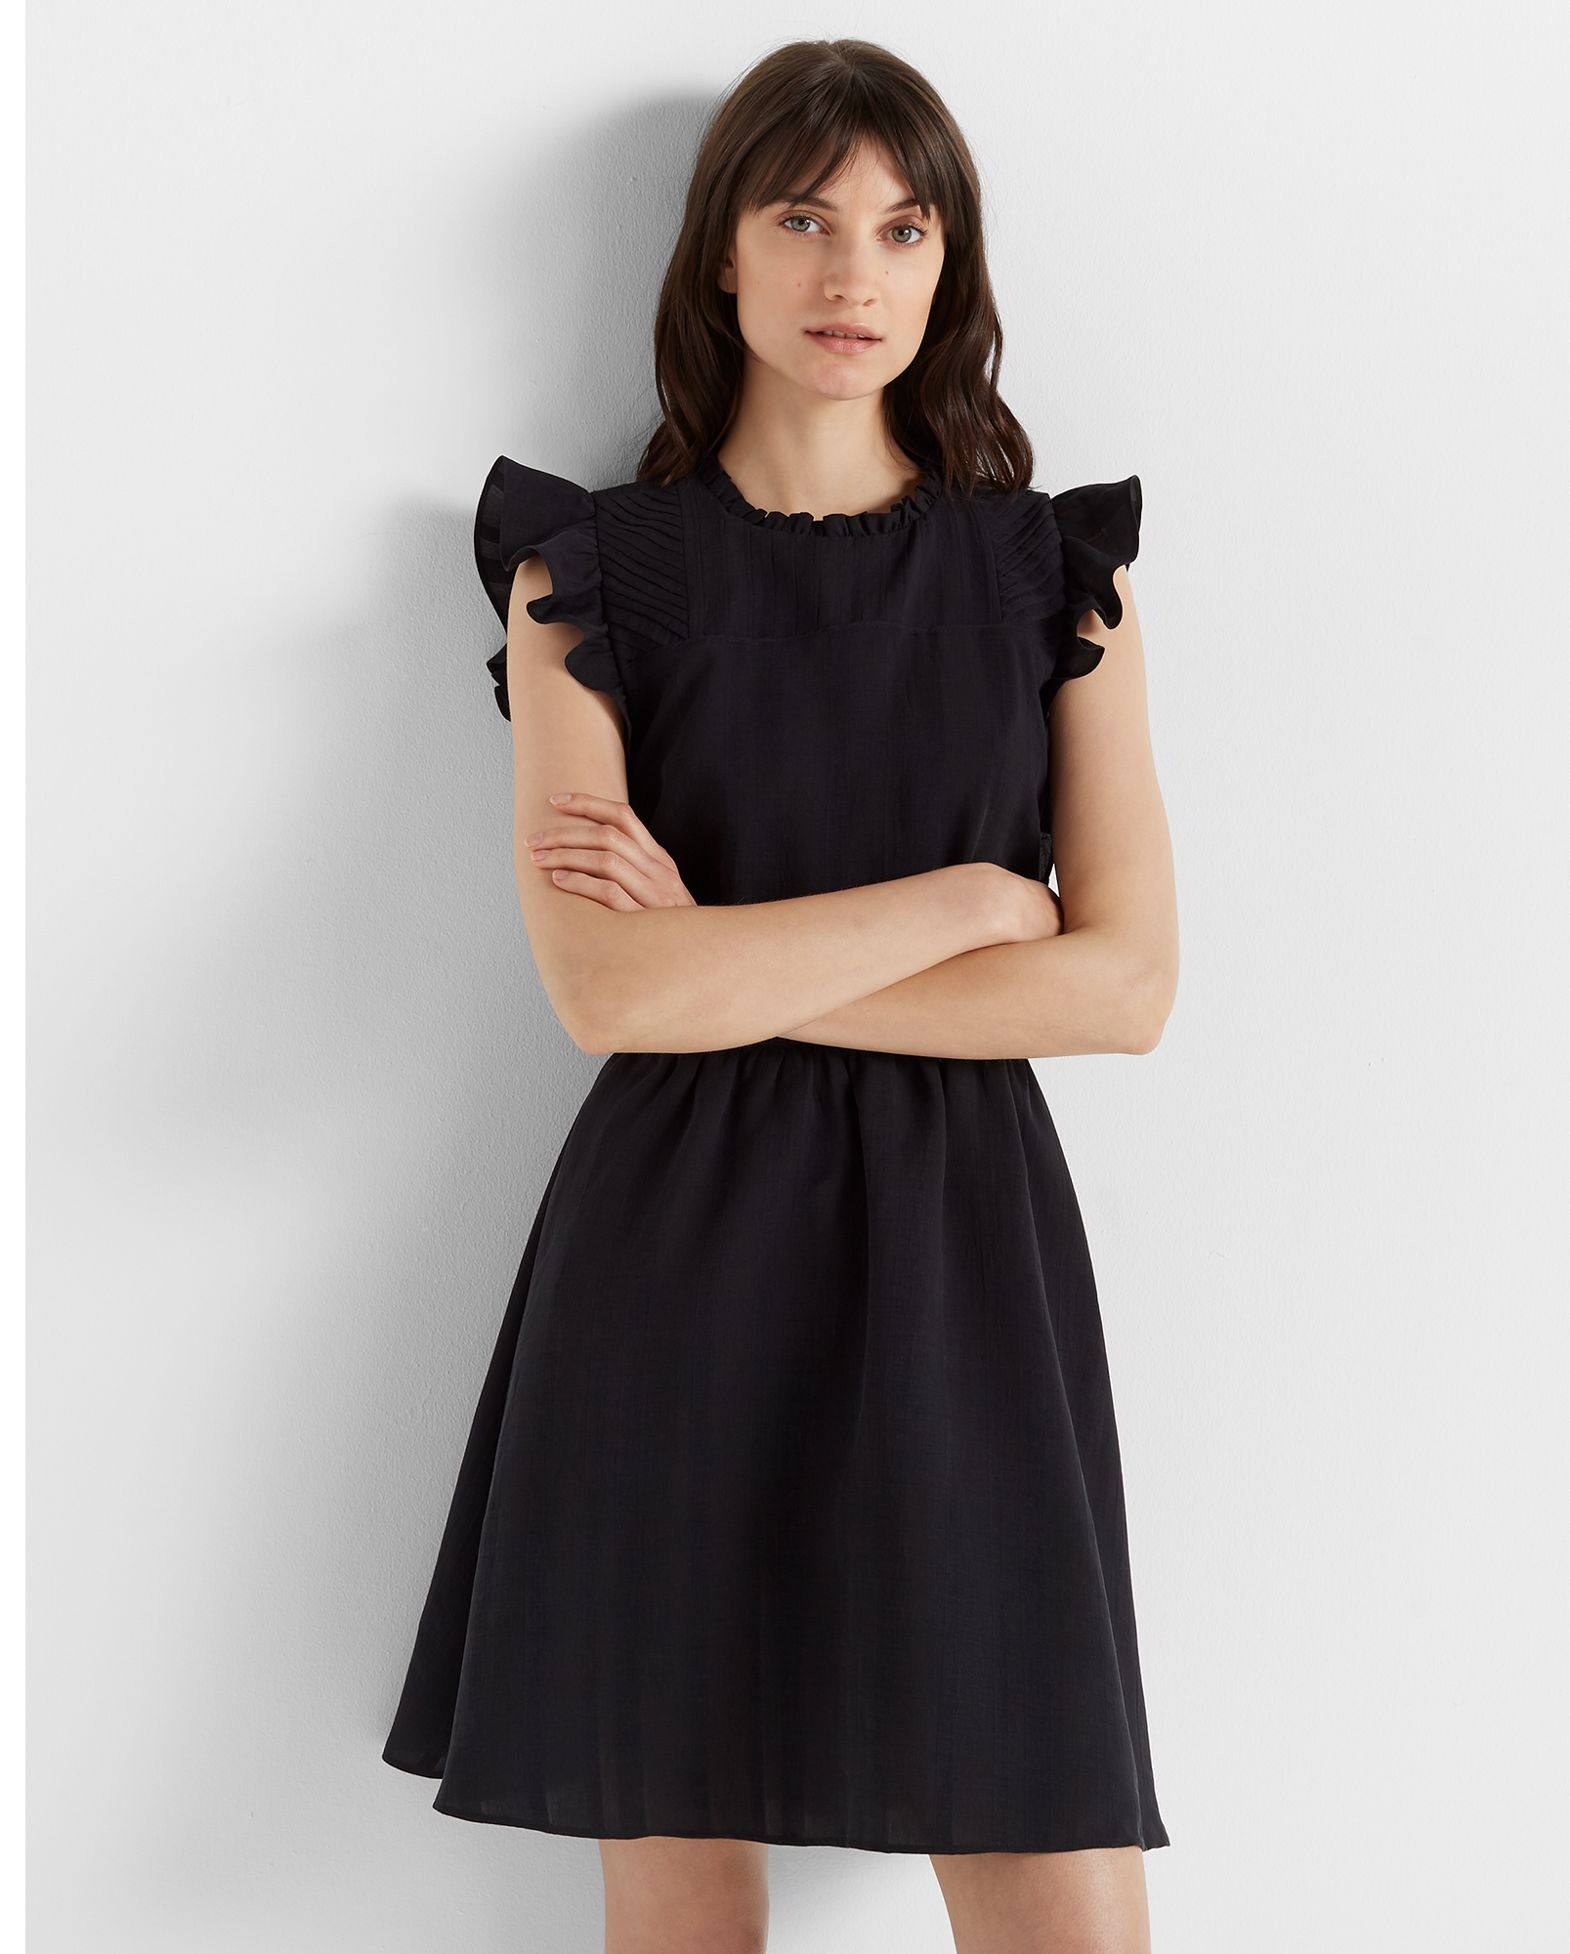 CLUB MONACO END OF SEASON SALE NOW UP TO 70% OFF!